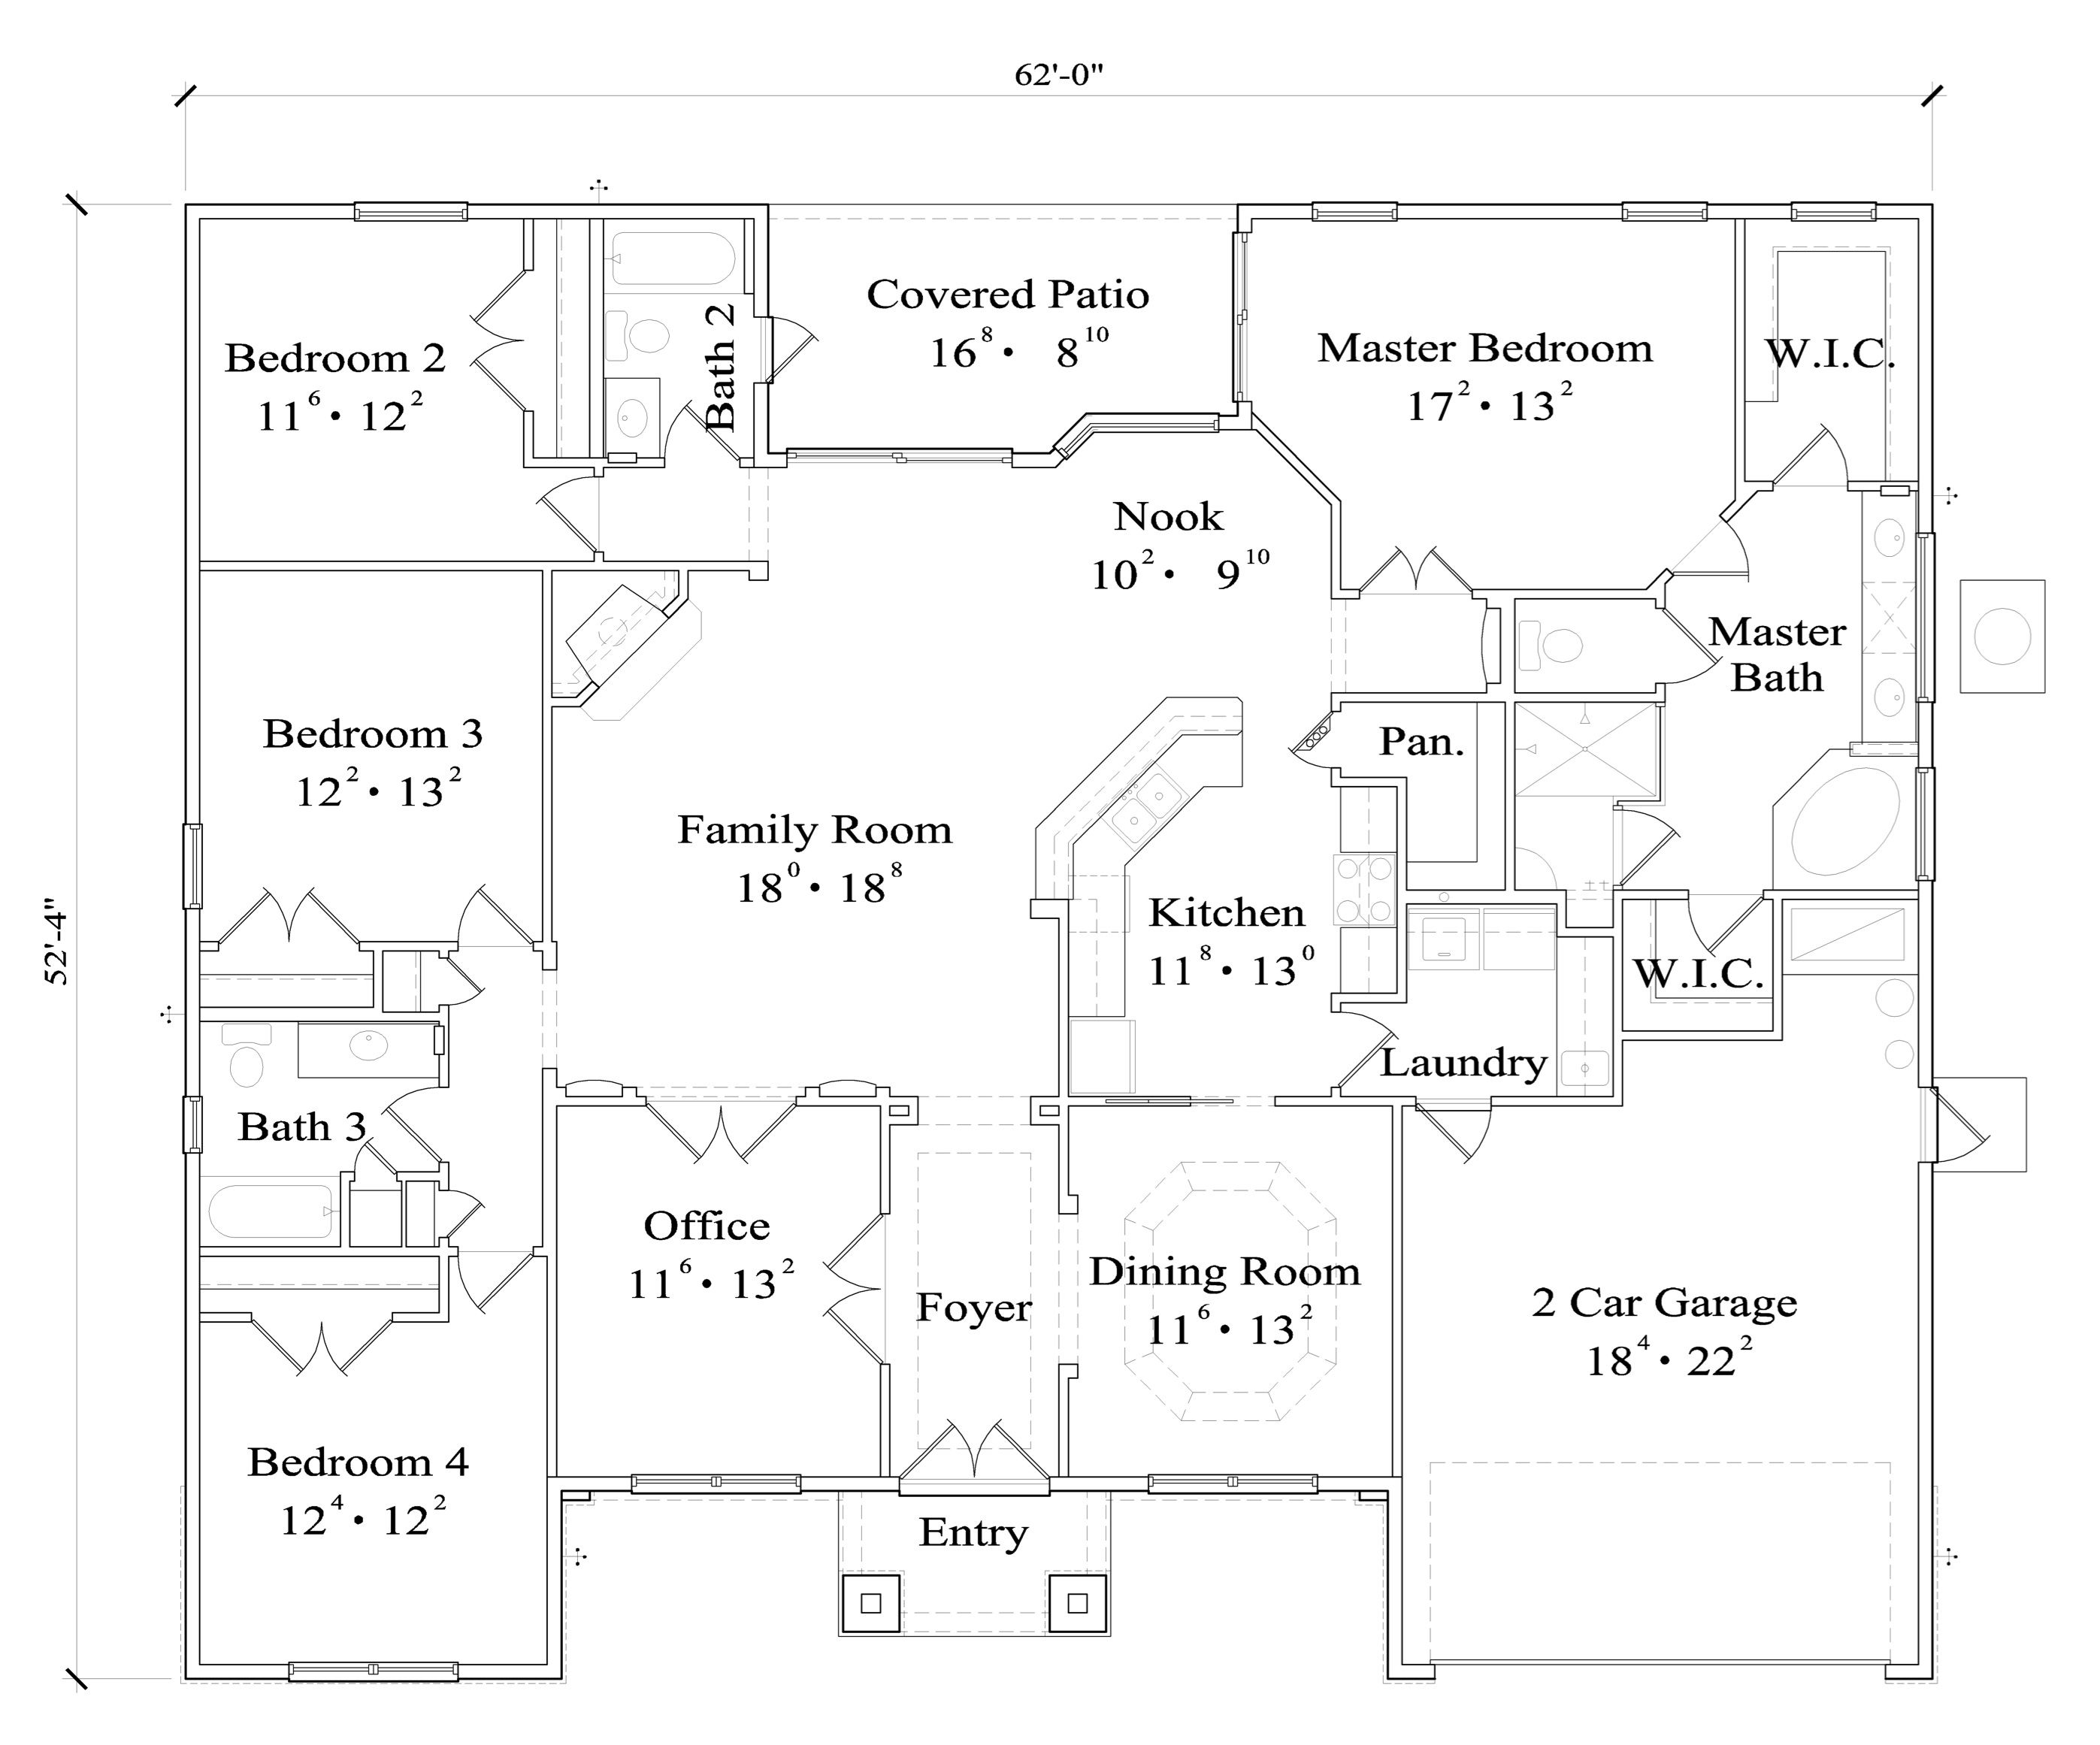 First Floor Plan image of The Nathaniel House Plan | Hizzy ... on elegant house plans, pueblo style house plans, southern house plans, slab siding house, 2013 most popular house plans, slab on grade home designs, 2 bedroom ranch home floor plans, slab houses design, rambler house plans, garage foundation plans, luxury ranch home plans, alternative house plans, slab houses good or bad, carolina house plans, front-facing kitchen house plans,